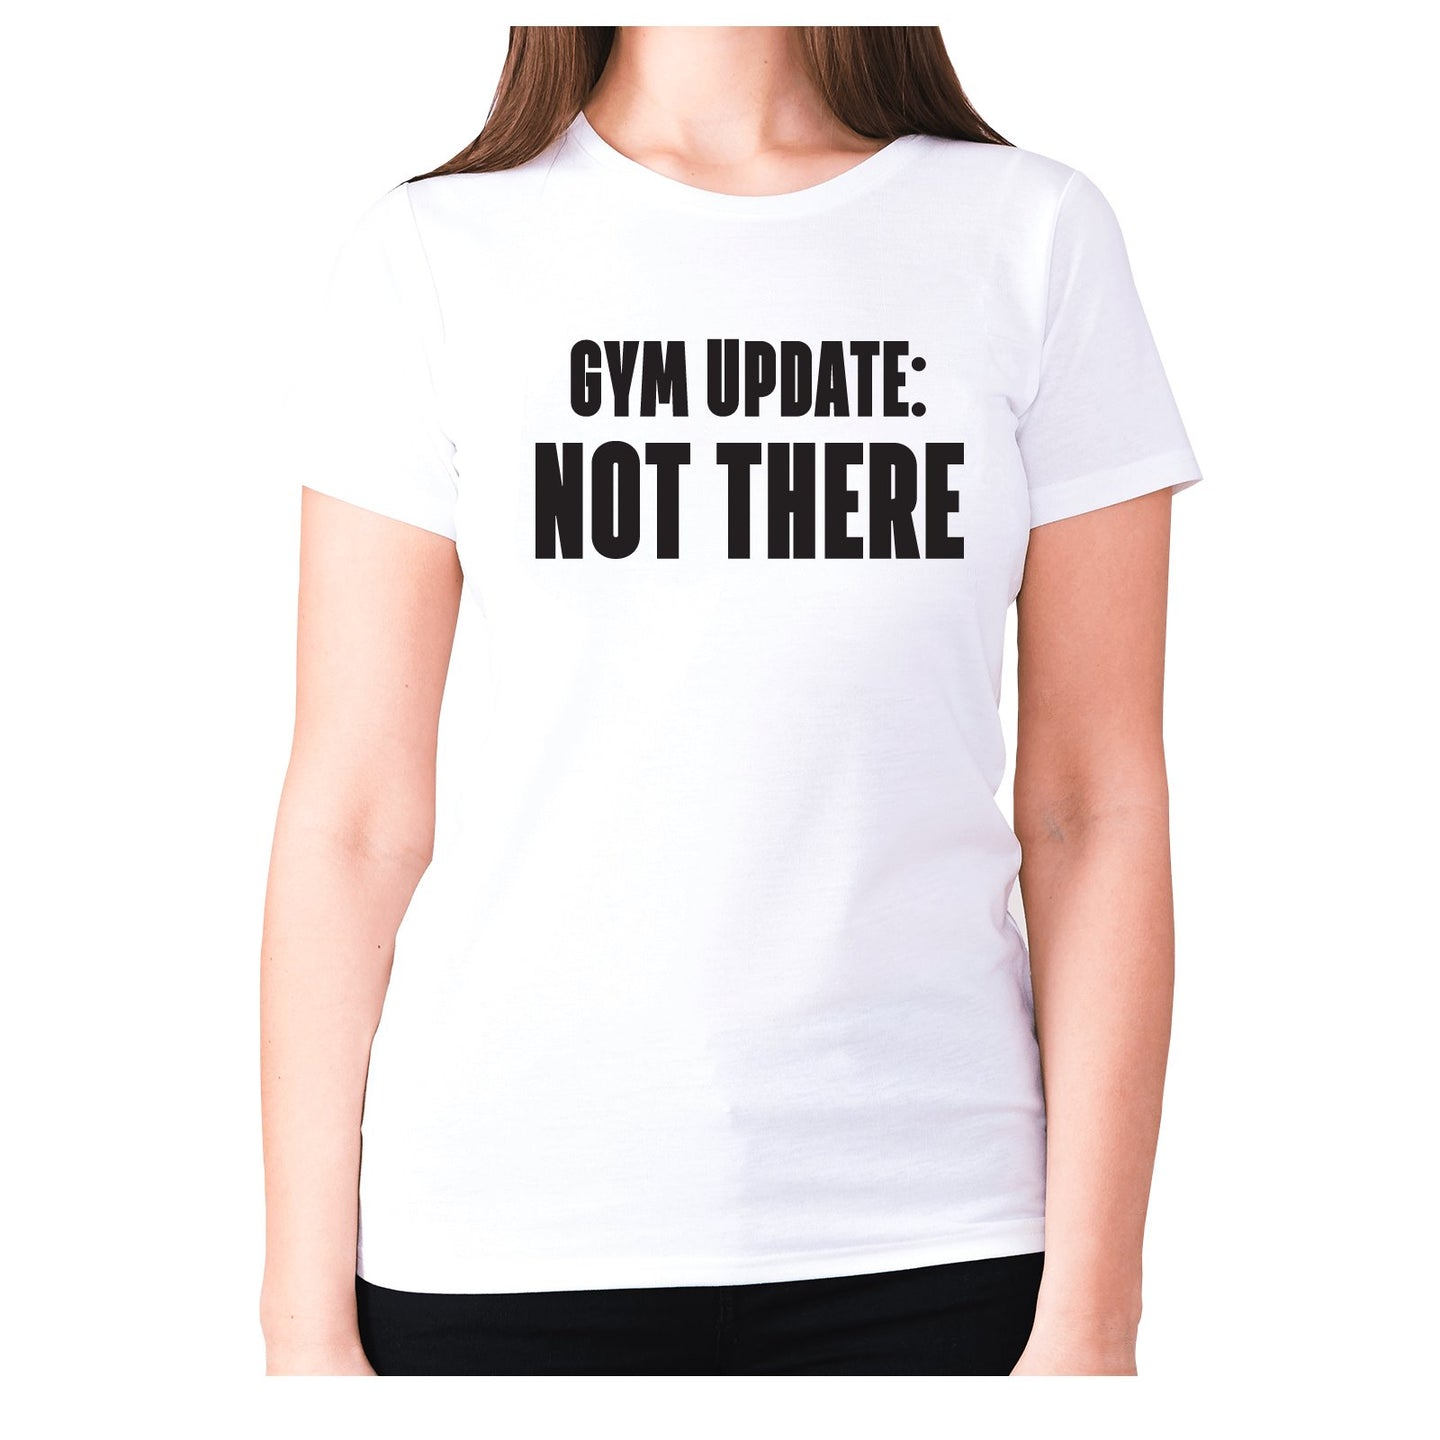 Gym update not there - women's premium t-shirt - White / S - Graphic Gear